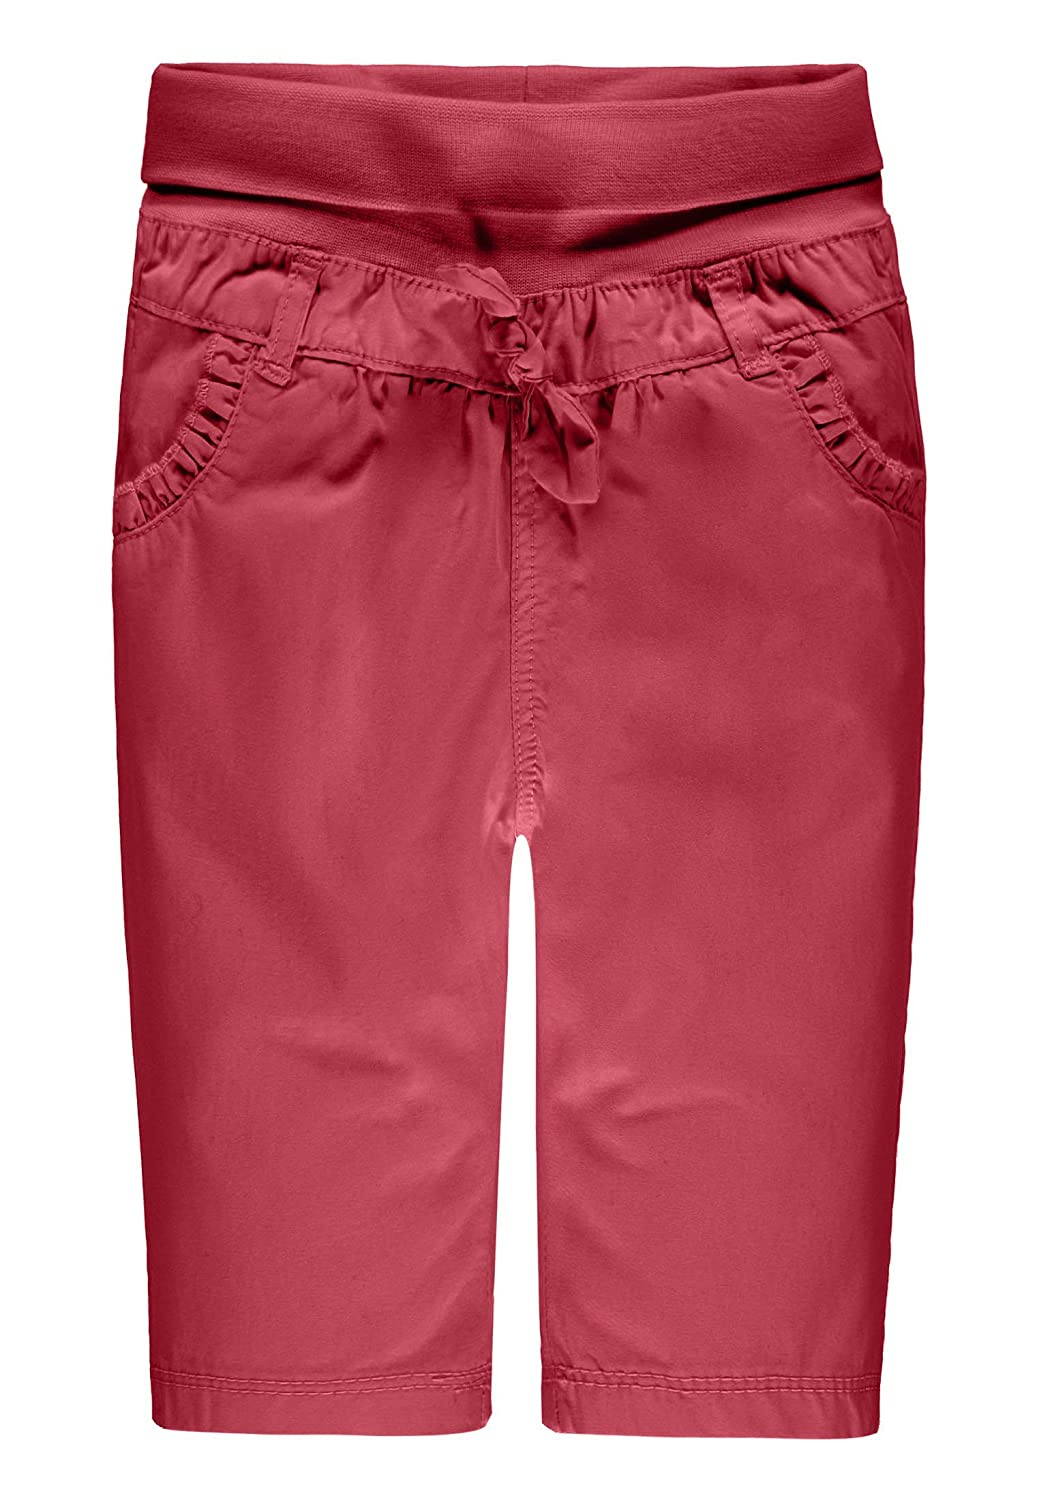 Steiff Collection Girl's Trousers 6832304